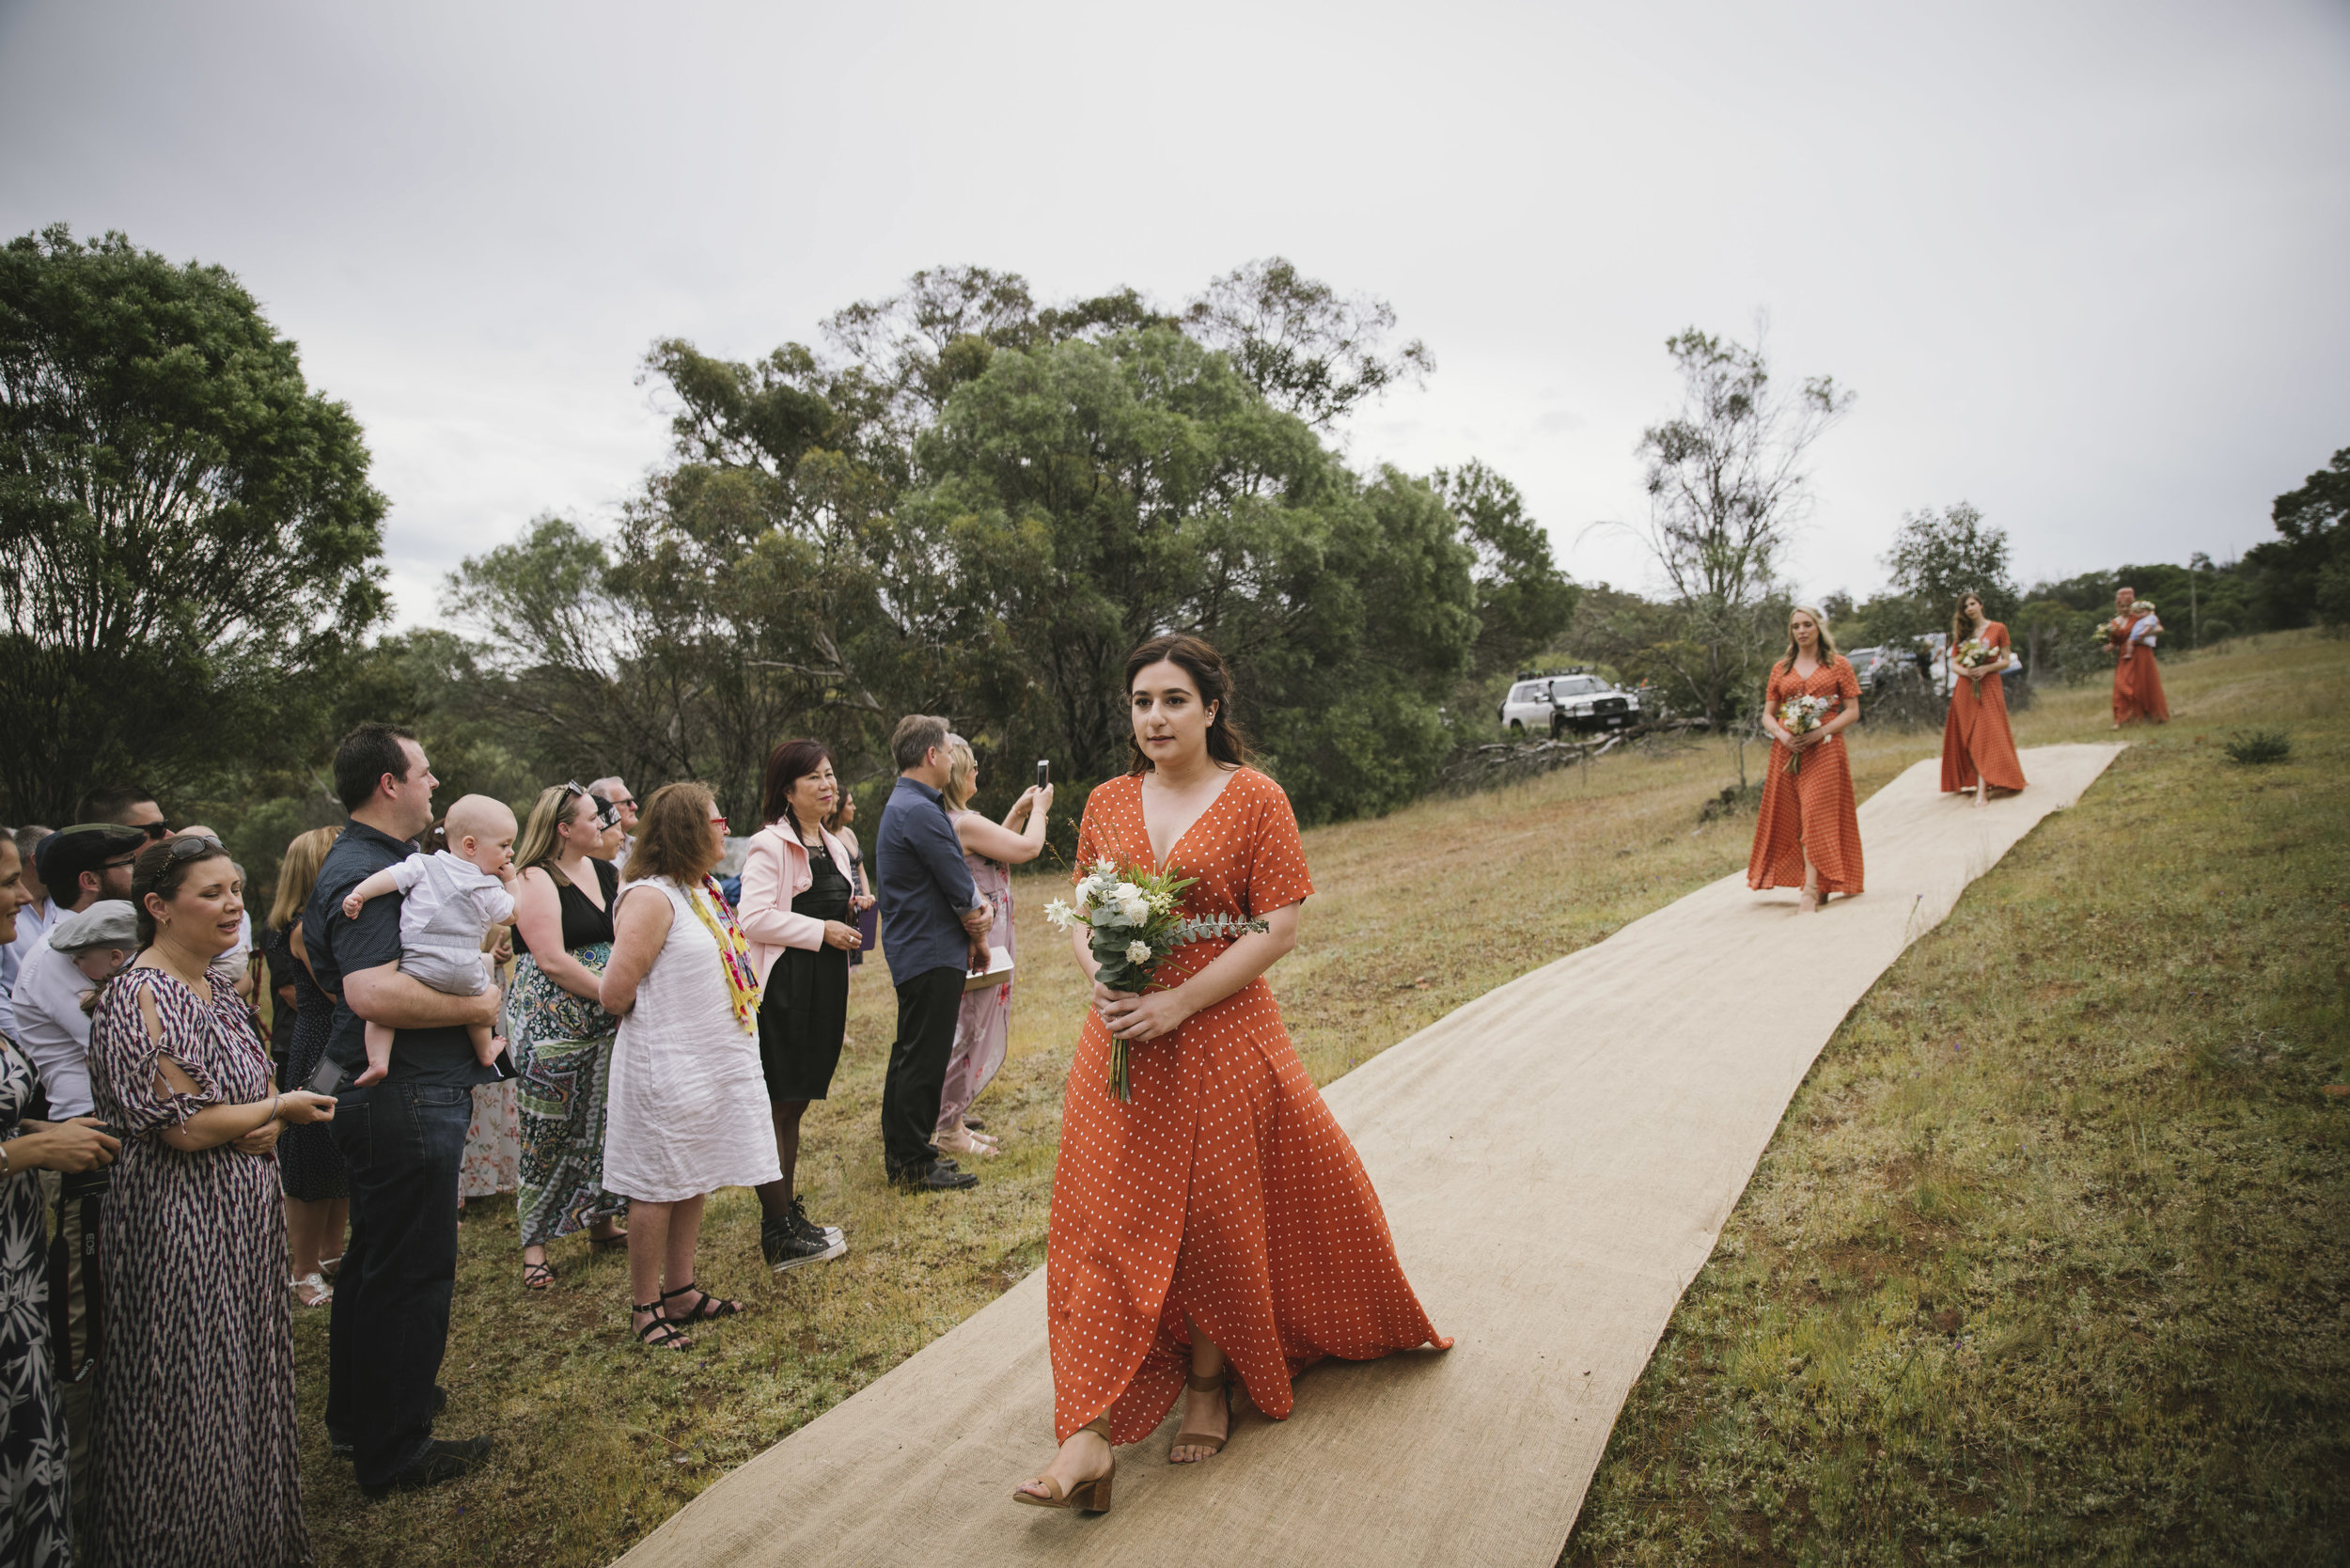 Avon Valley Toodyay Rustic Rural Festival Wedding  (25).jpg